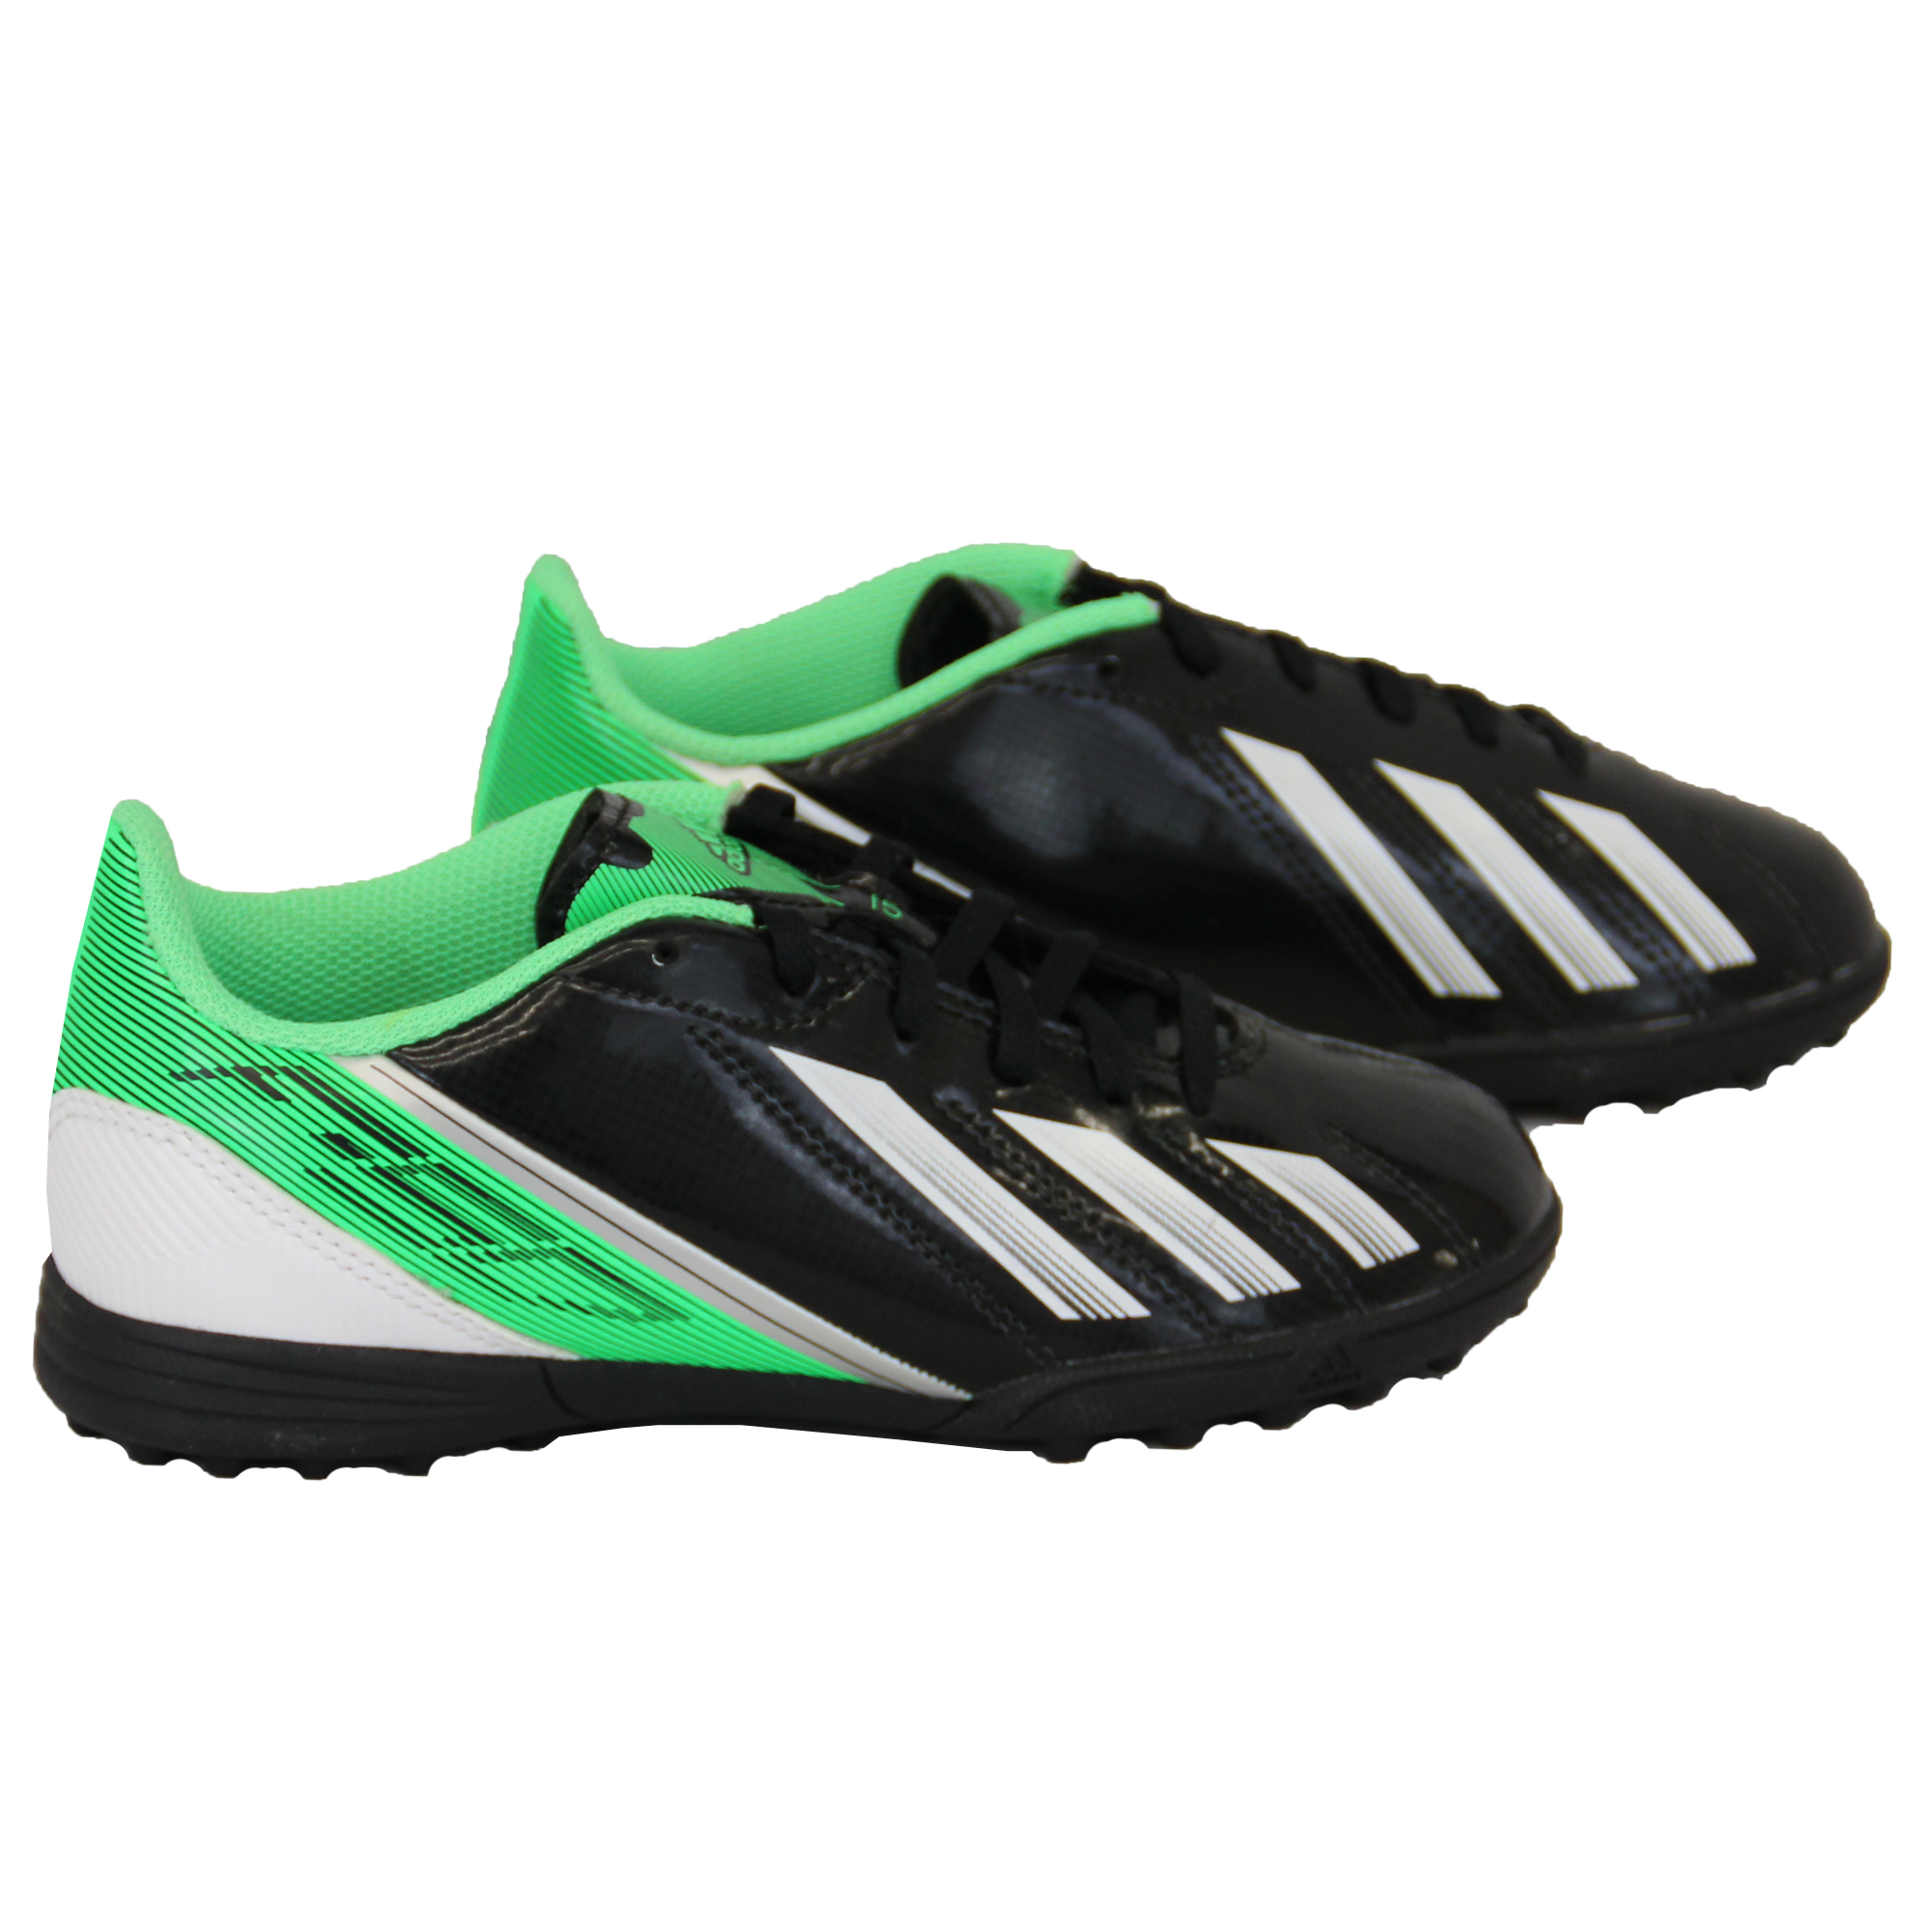 Boys ADIDAS Trainers Kids Football Soccer Astro Turf Shoes Lace Up Neon Youth